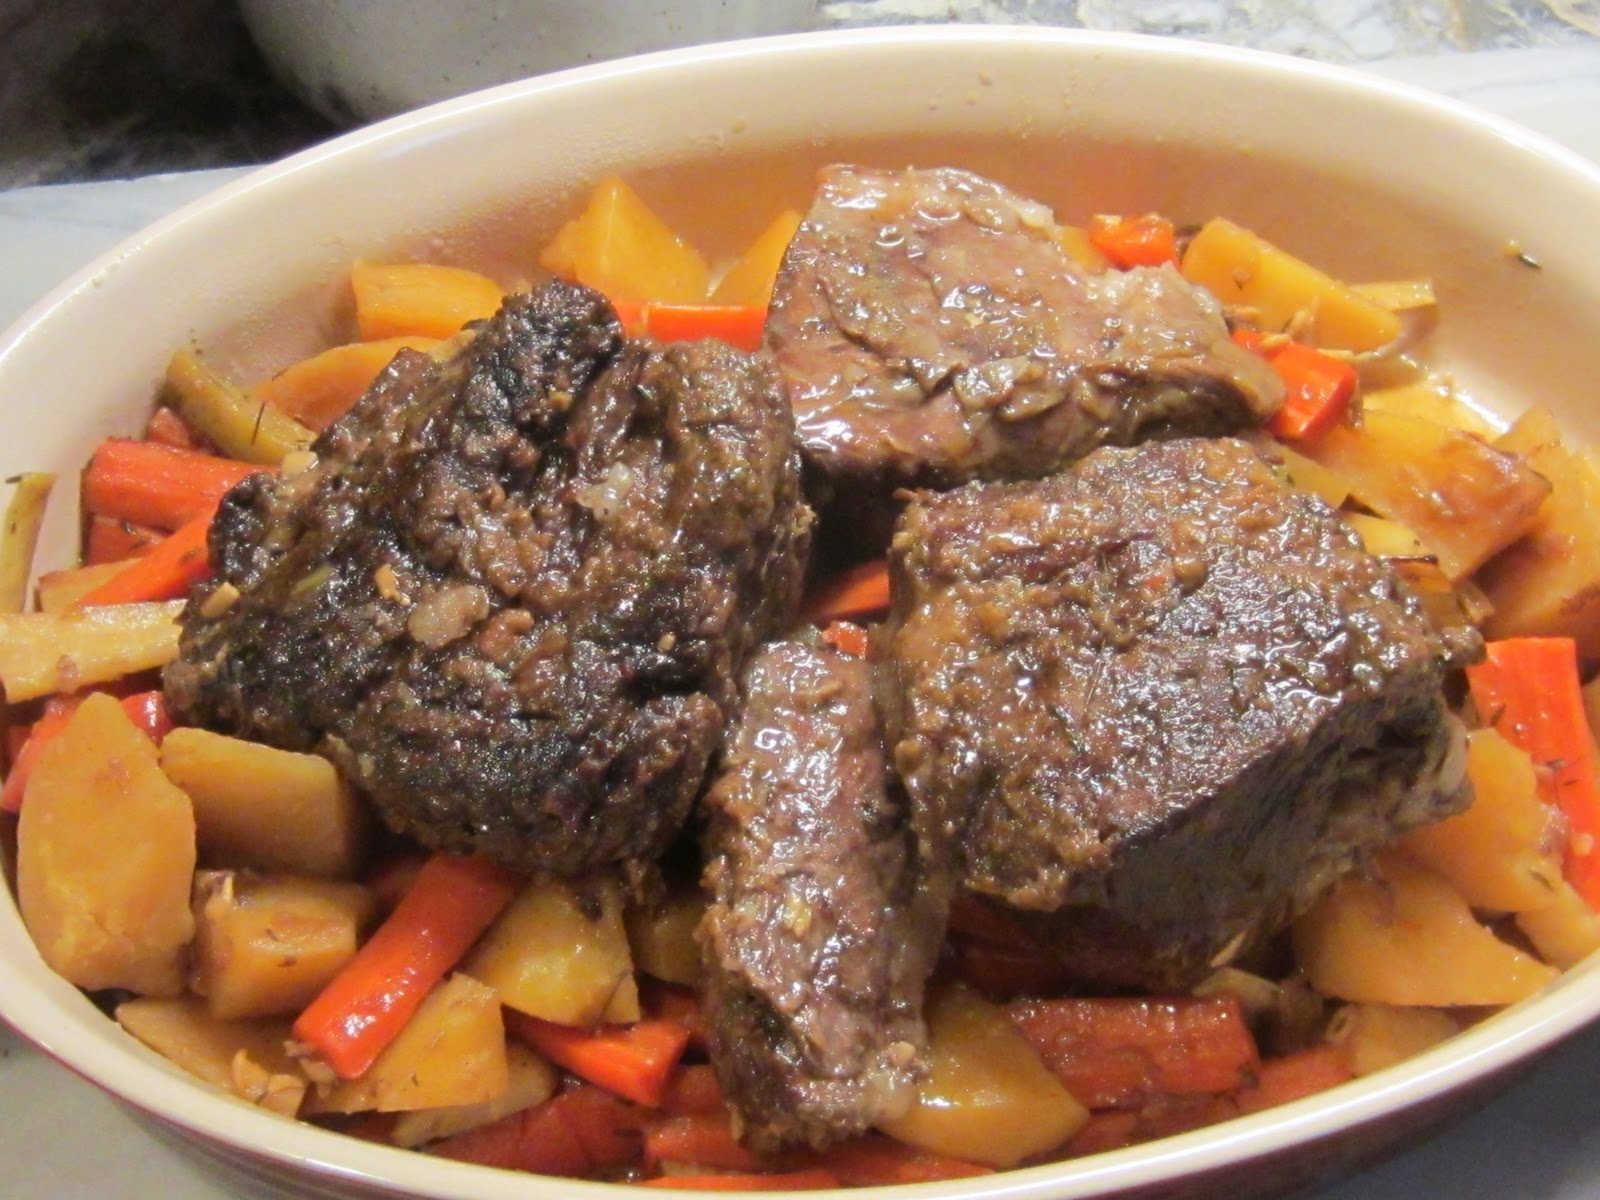 ... Apiary Aliquippa, PA: Honey Pot Roast for Christmas (Eve) Dinner